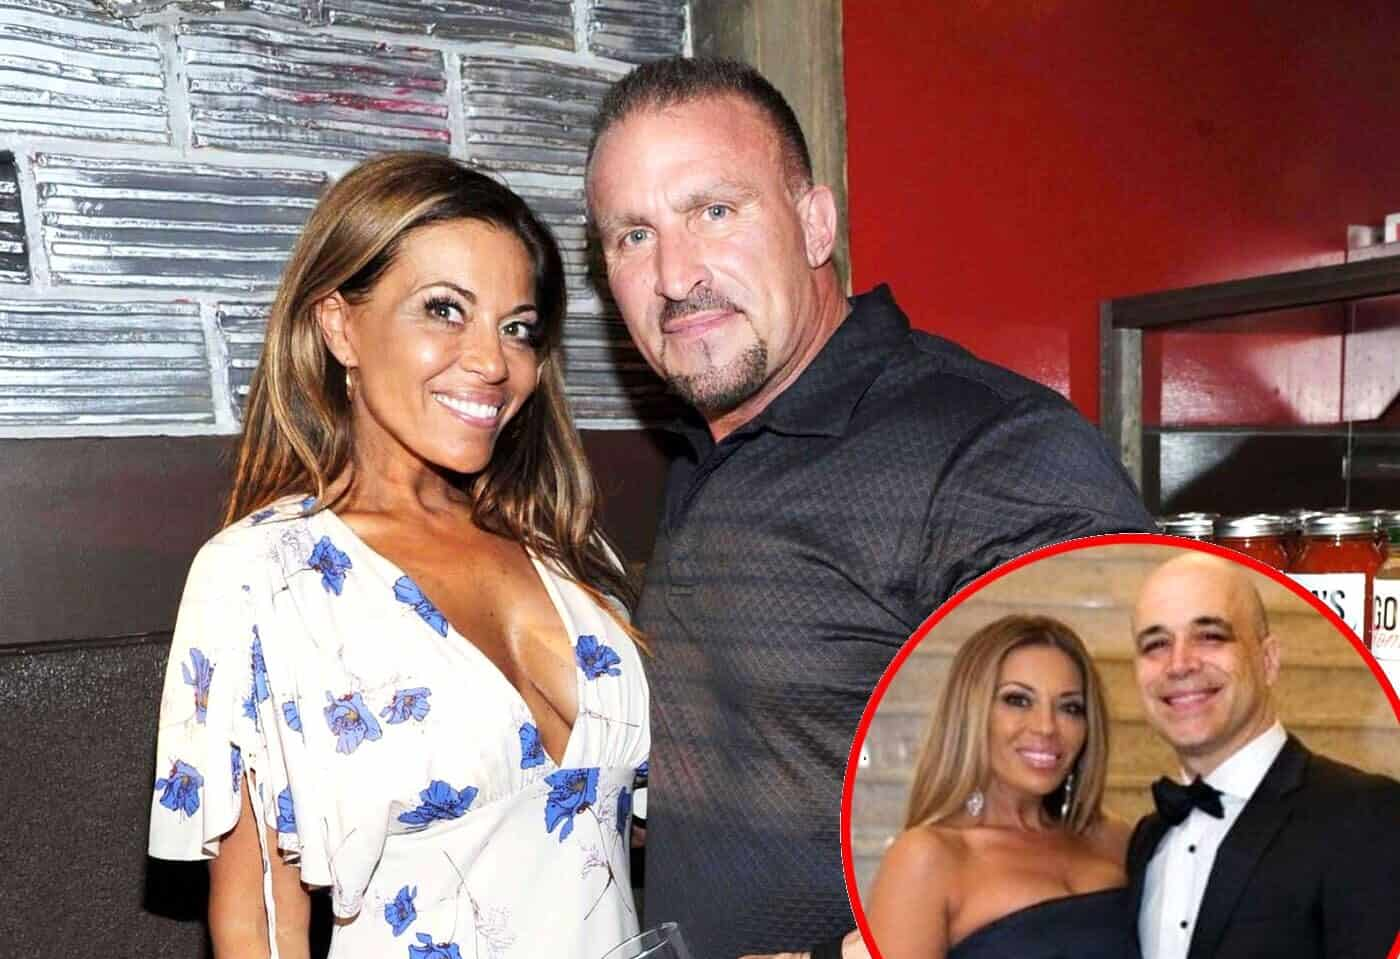 RHONJ Star Dolores Catania Gives Shocking Details About the Last Time She Slept With Ex-Husband Frank Catania, Suggests She's No Longer Open to Getting Engaged to Boyfriend Dr. David Principe